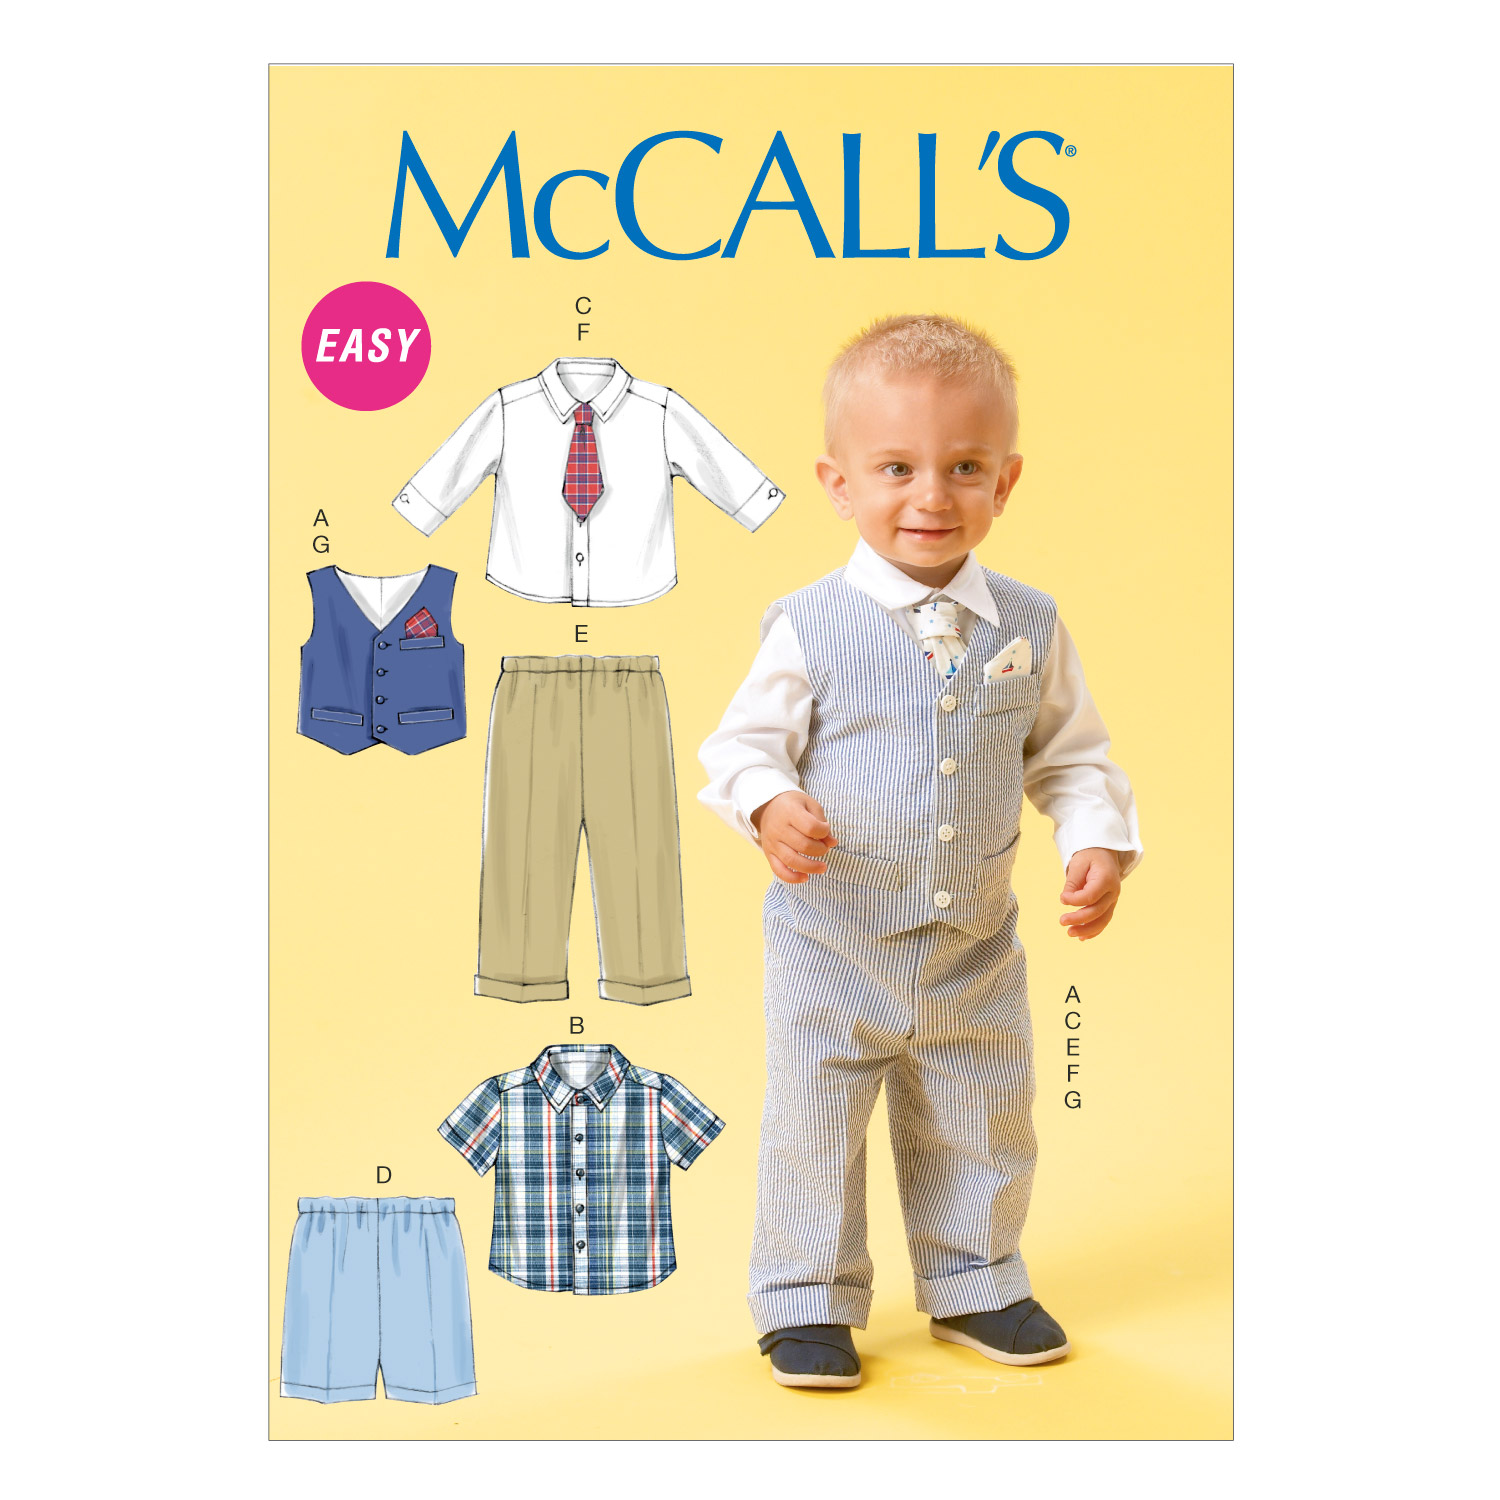 1930s Childrens Fashion: Girls, Boys, Toddler, Baby Costumes McCalls Infants Vest Shirt Shorts Pants Tie and Pocket Square Pattern M6873 Size YA5 $12.48 AT vintagedancer.com